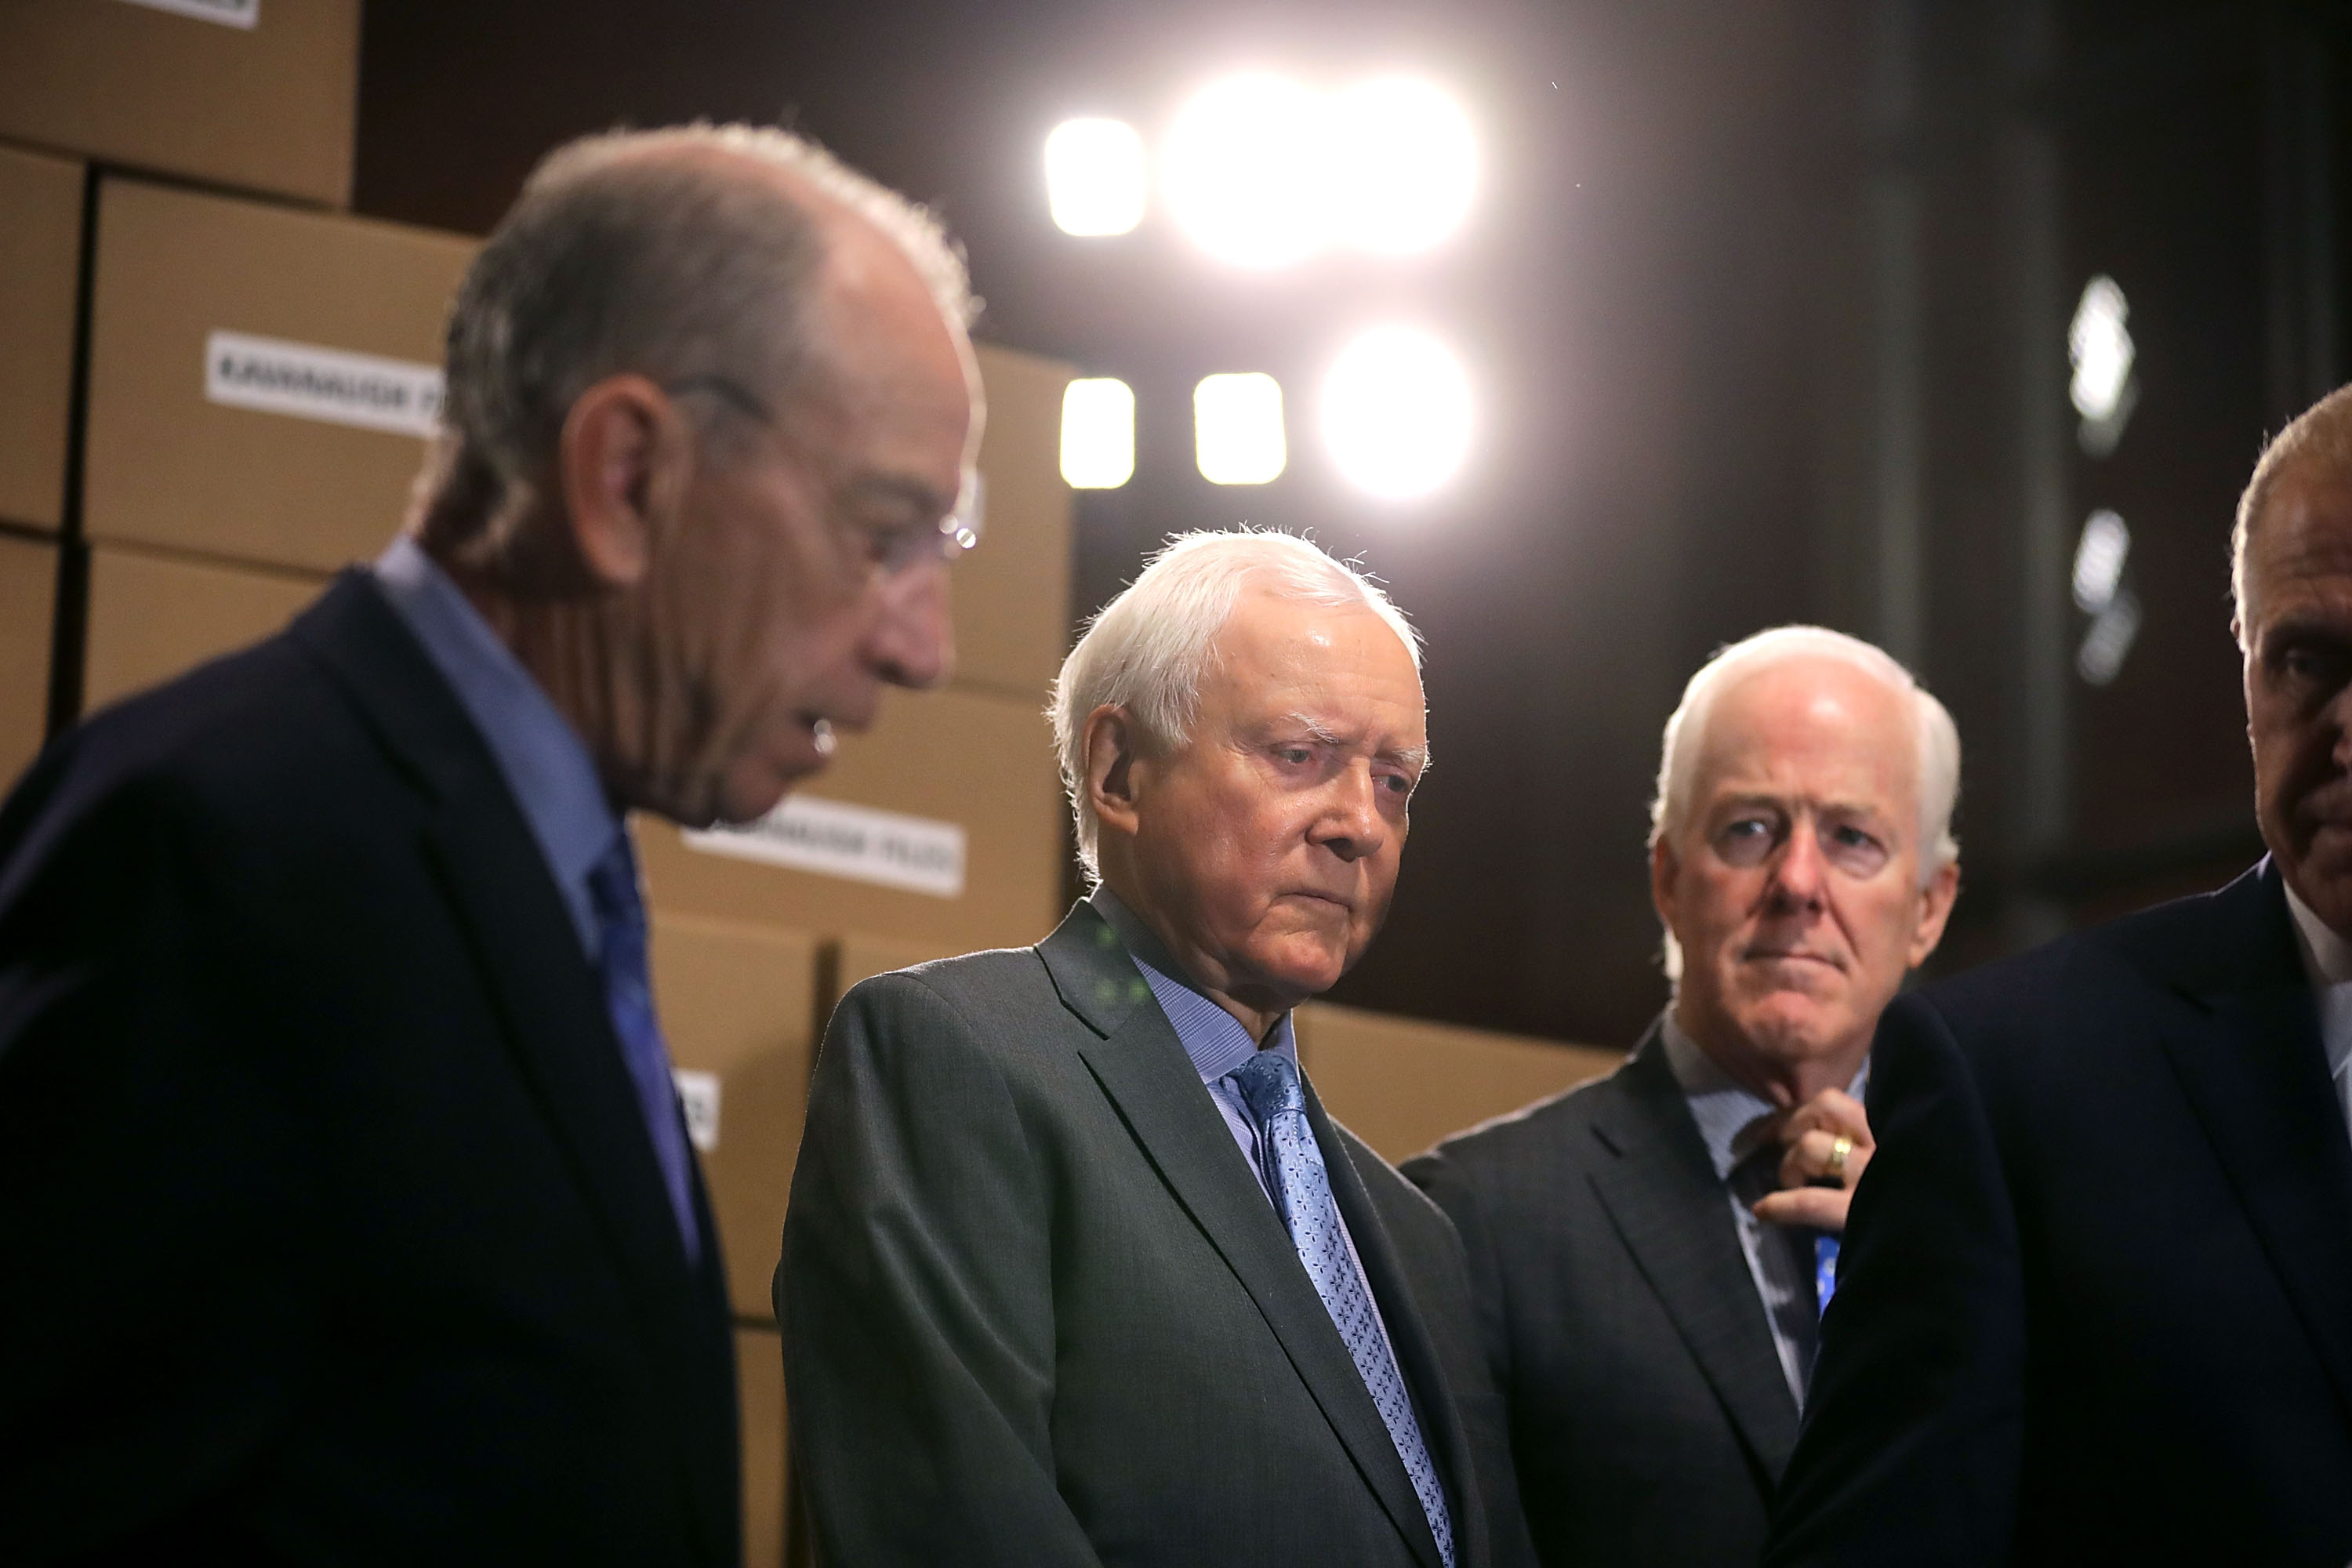 Republican members of the Senate Judiciary Committee, including Chairman Charles Grassley (R-IA), Sen. John Cornyn (R-TX), Sen. Mike Lee (R-UT), Sen. Orrin Hatch (R-UT), Sen. Thom Tillis (R-NC) hold a news conference about Supreme Court nominee Judge Brett Kavanaugh in the Dirksen Senate Office Building on Capitol Hill August 2, 2018 in Washington, DC. Republicans on the committee claim that Senate Democrats are attempting to slow or stall Kavanaugh's confirmation with demands to see emails and other records relating to KavanaughÕs time as staff secretary to former President George W. Bush.